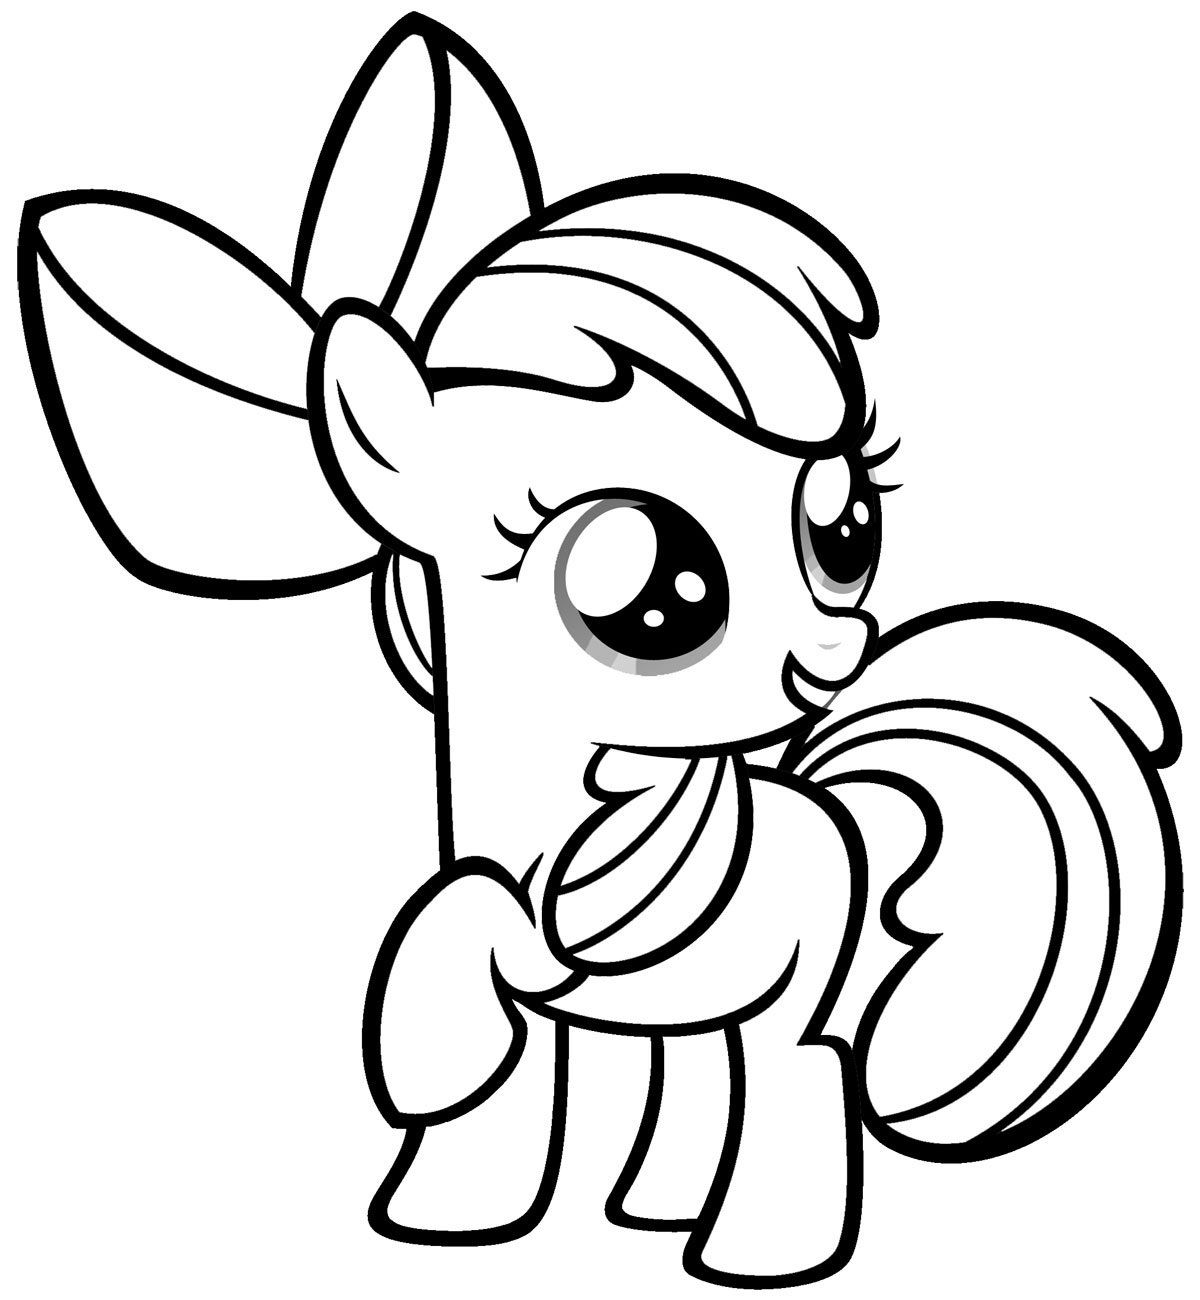 35 My Little Pony Coloring Pages My Little Pony Coloring My Little Pony Characters Mermaid Coloring Pages